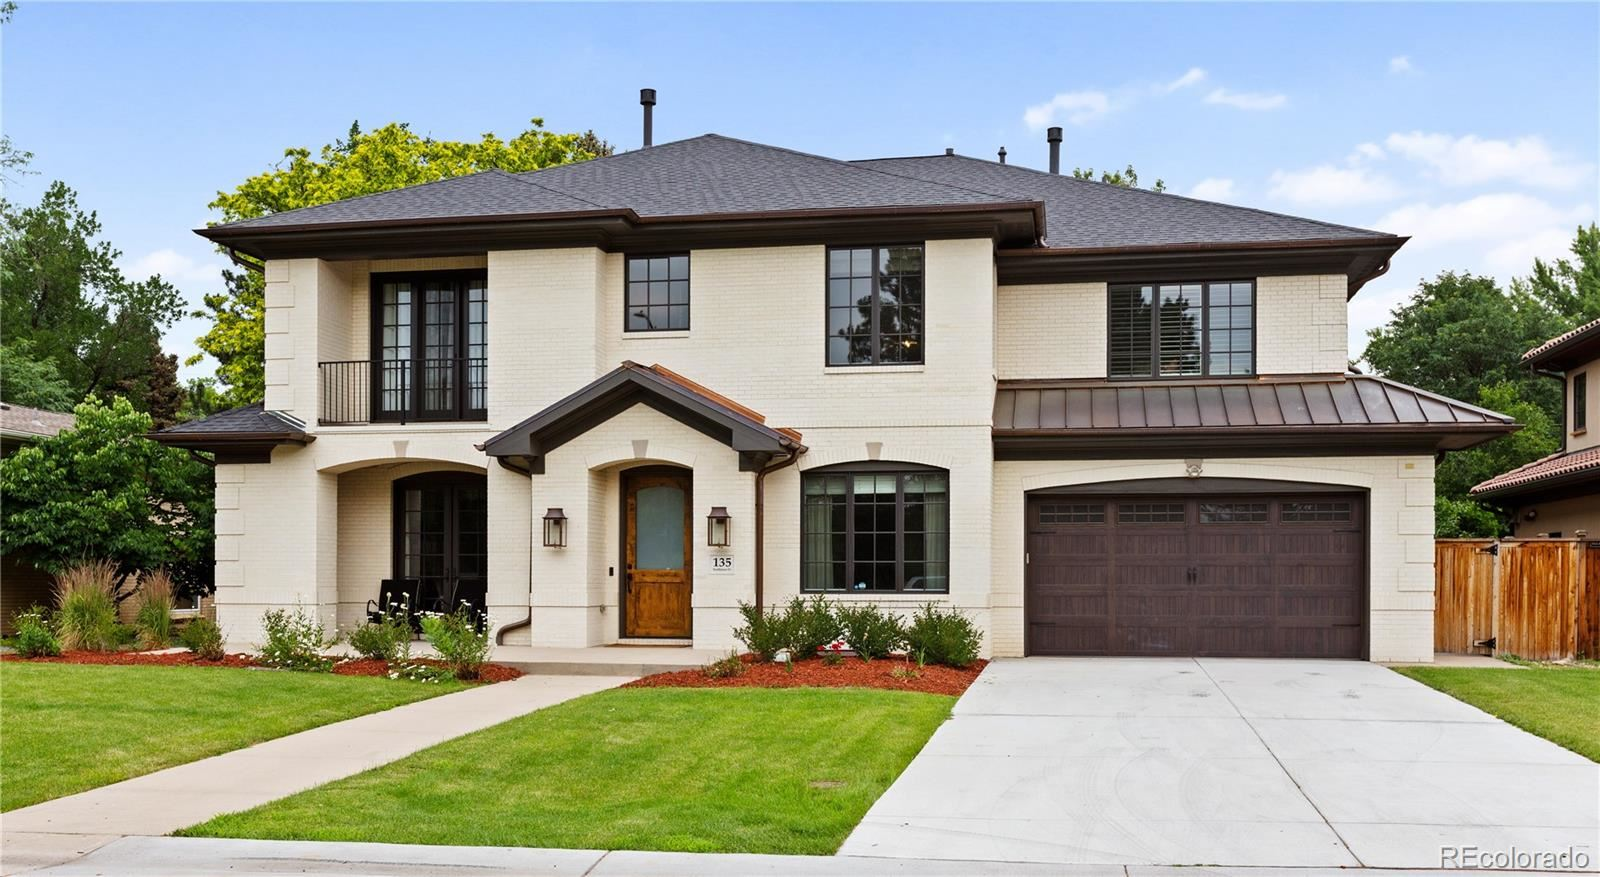 Photo of 135 Southmoor Drive, Denver, CO 80220 (MLS # 5863696)